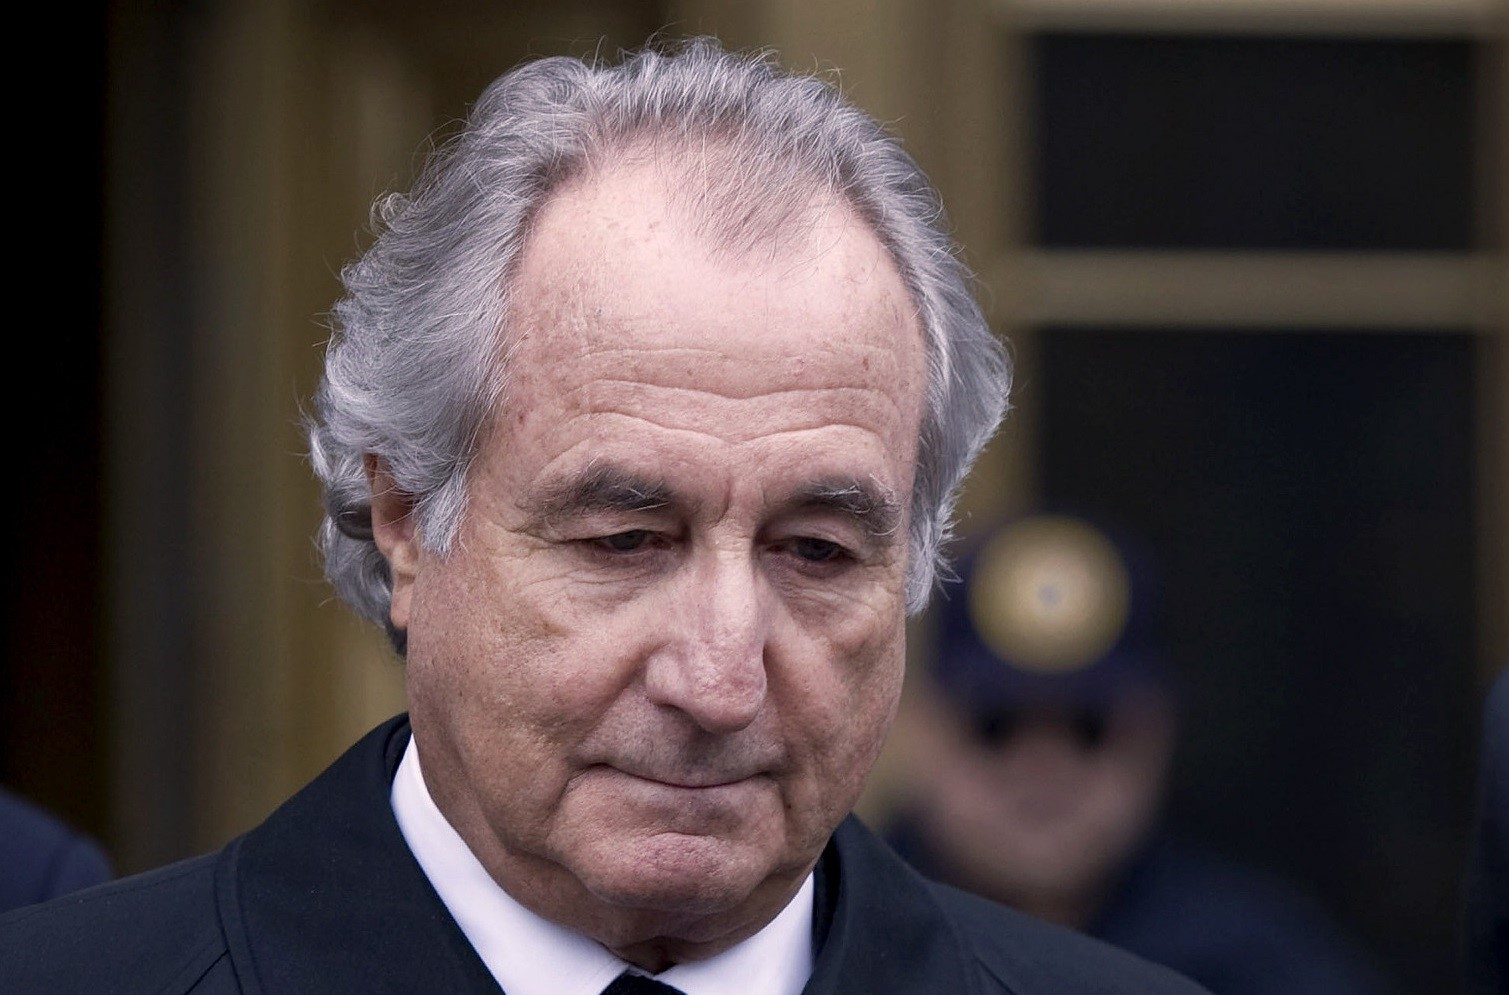 Remember Bernie Madoff? 5 Questions You MUST Ask to Avoid Bad Financial Advice